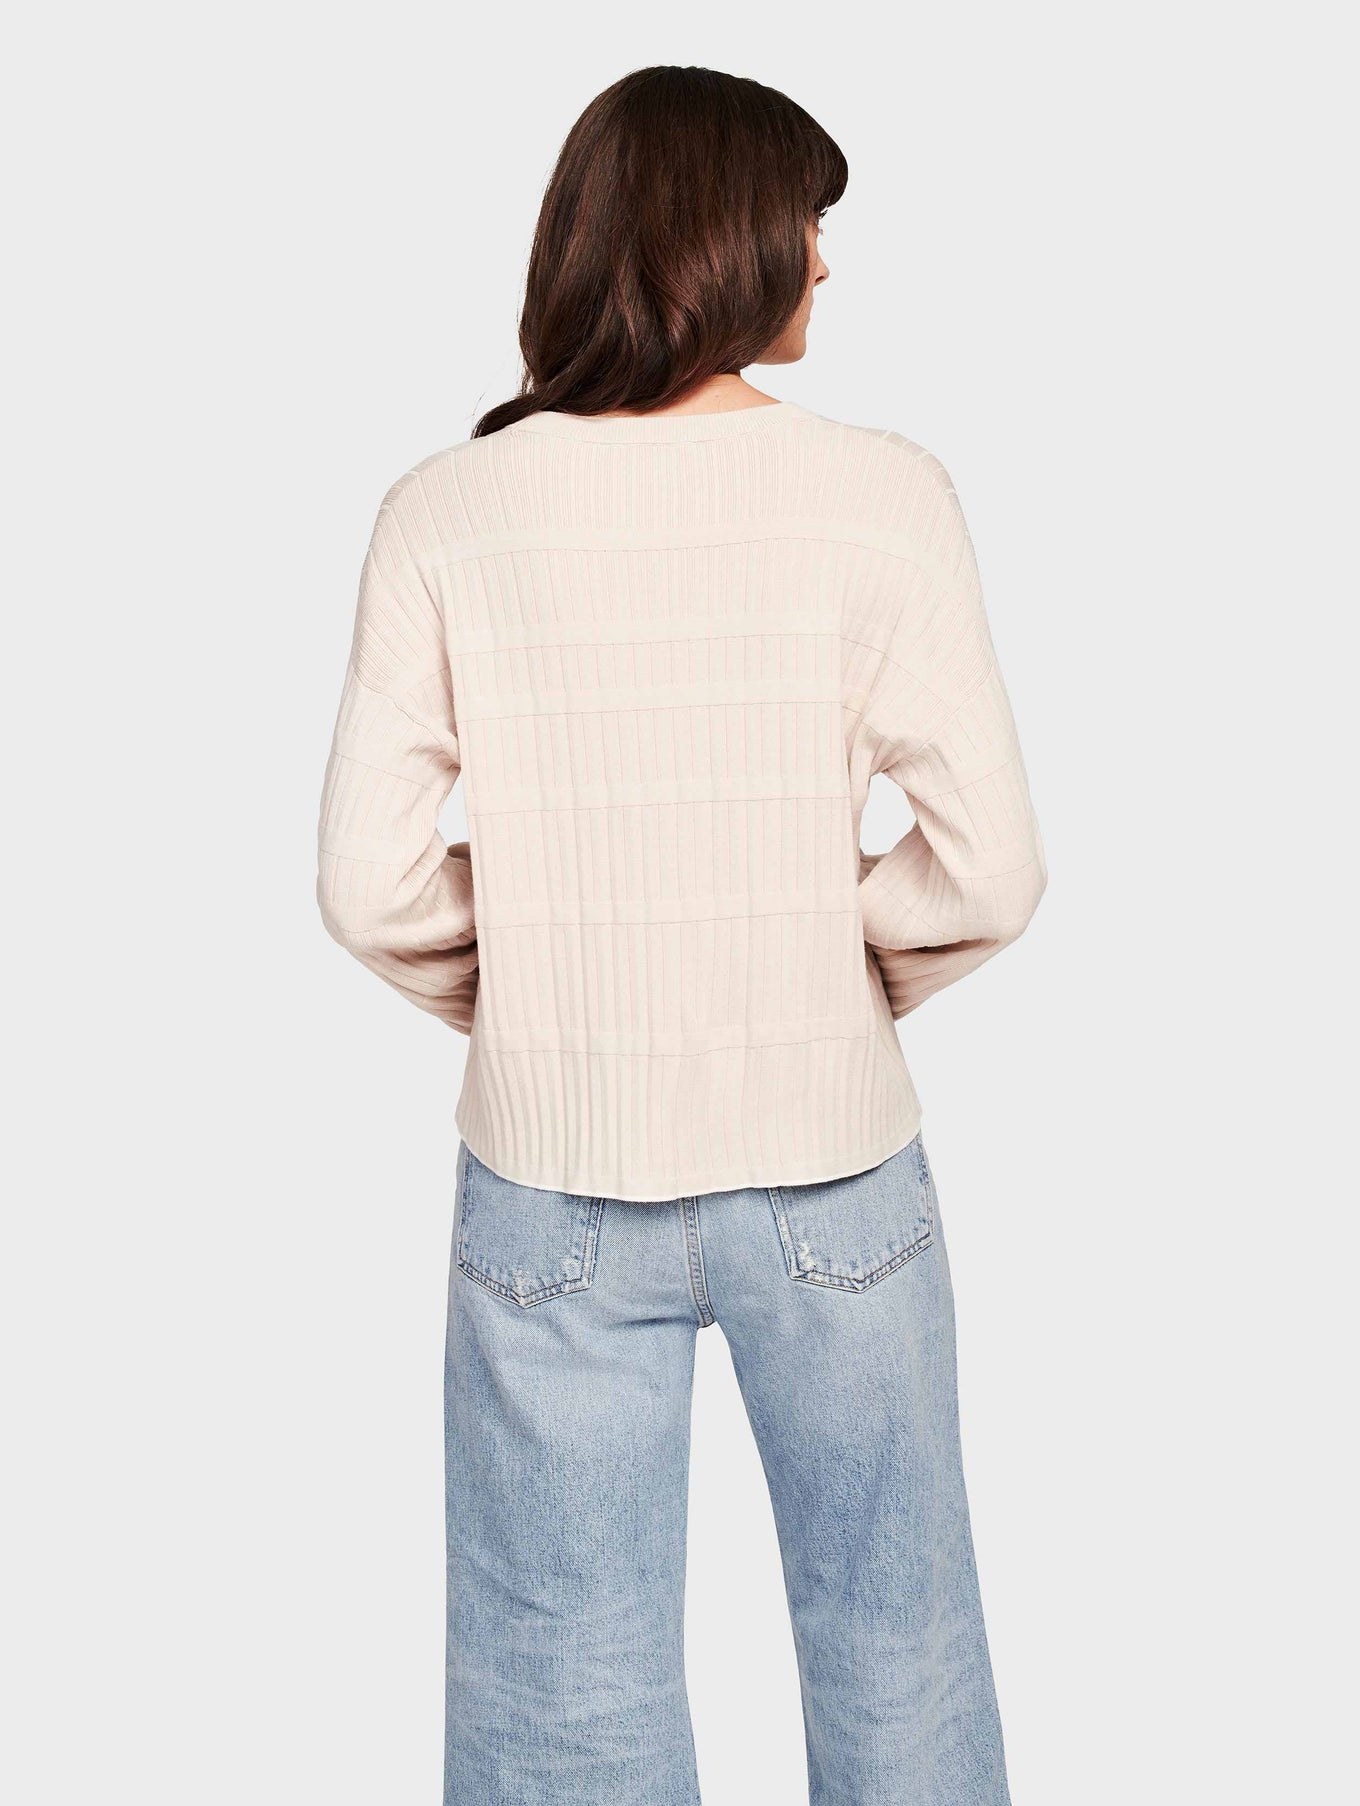 Fine Gauge Stretch Pleated Stitch Tipped Crewneck - Blush/Cream - Image 3